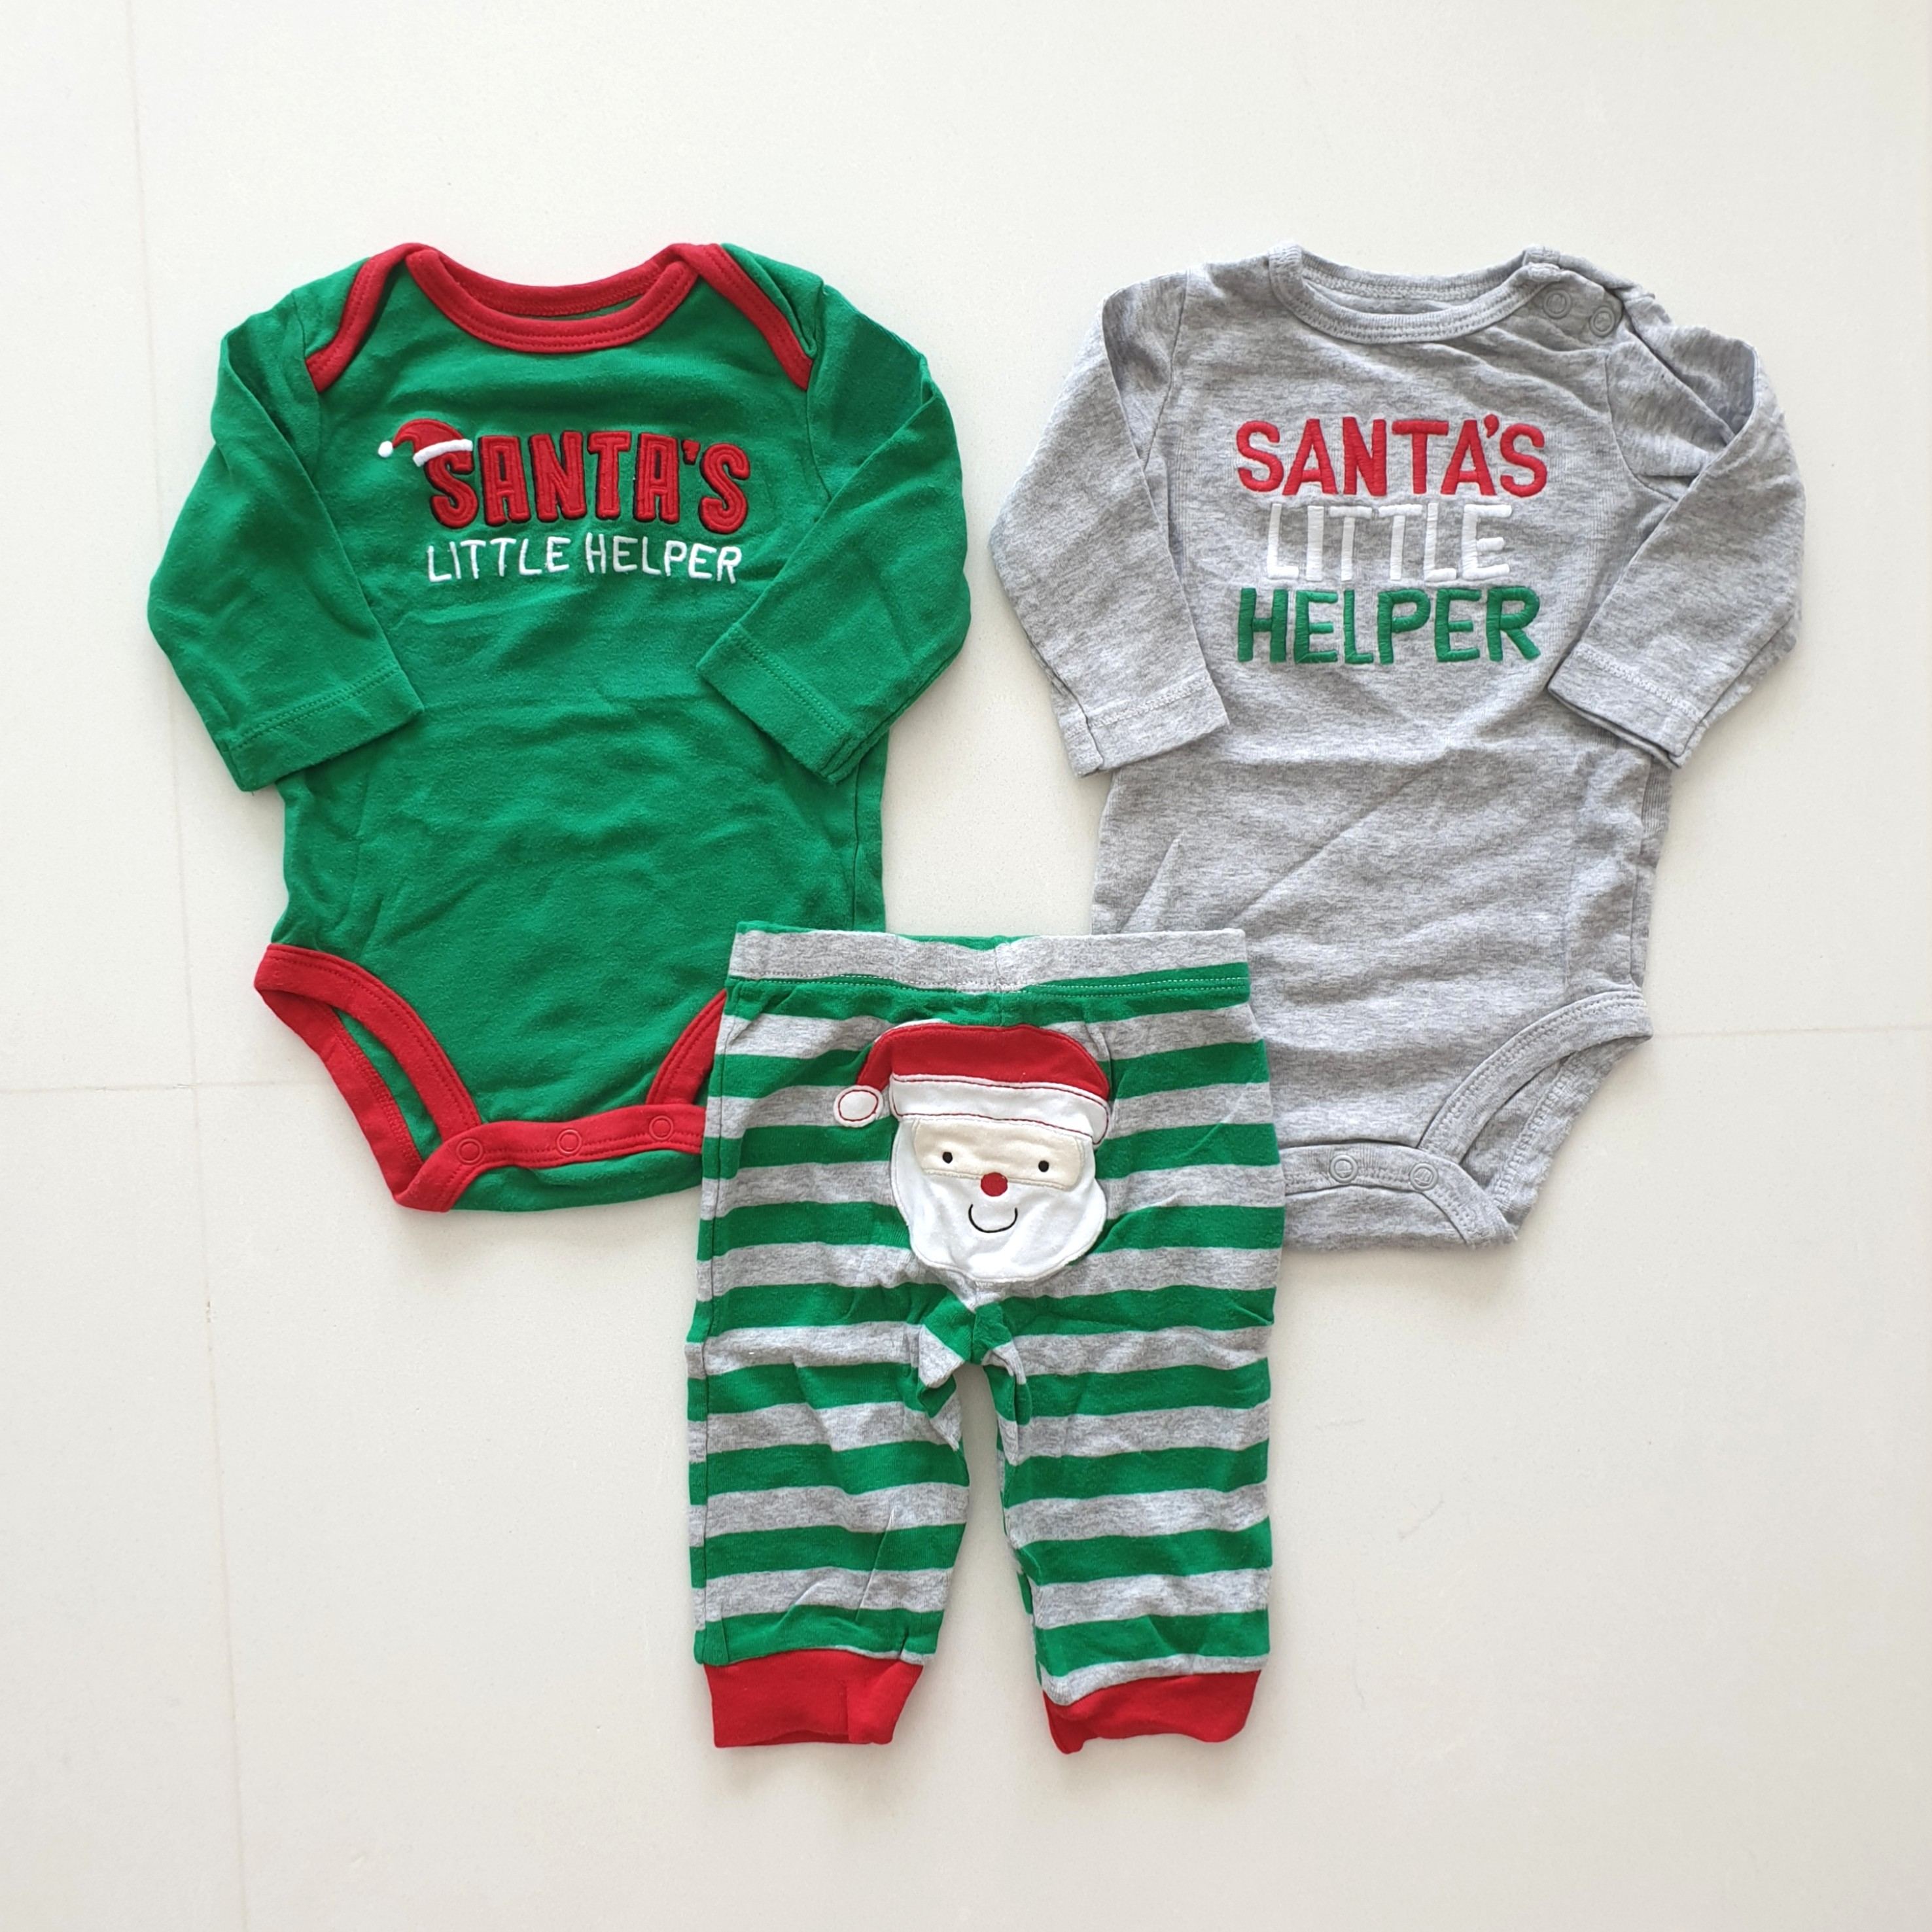 7e8a52e65376 Carter's Christmas 3-piece Outfit 3mth, Babies & Kids, Babies Apparel on  Carousell